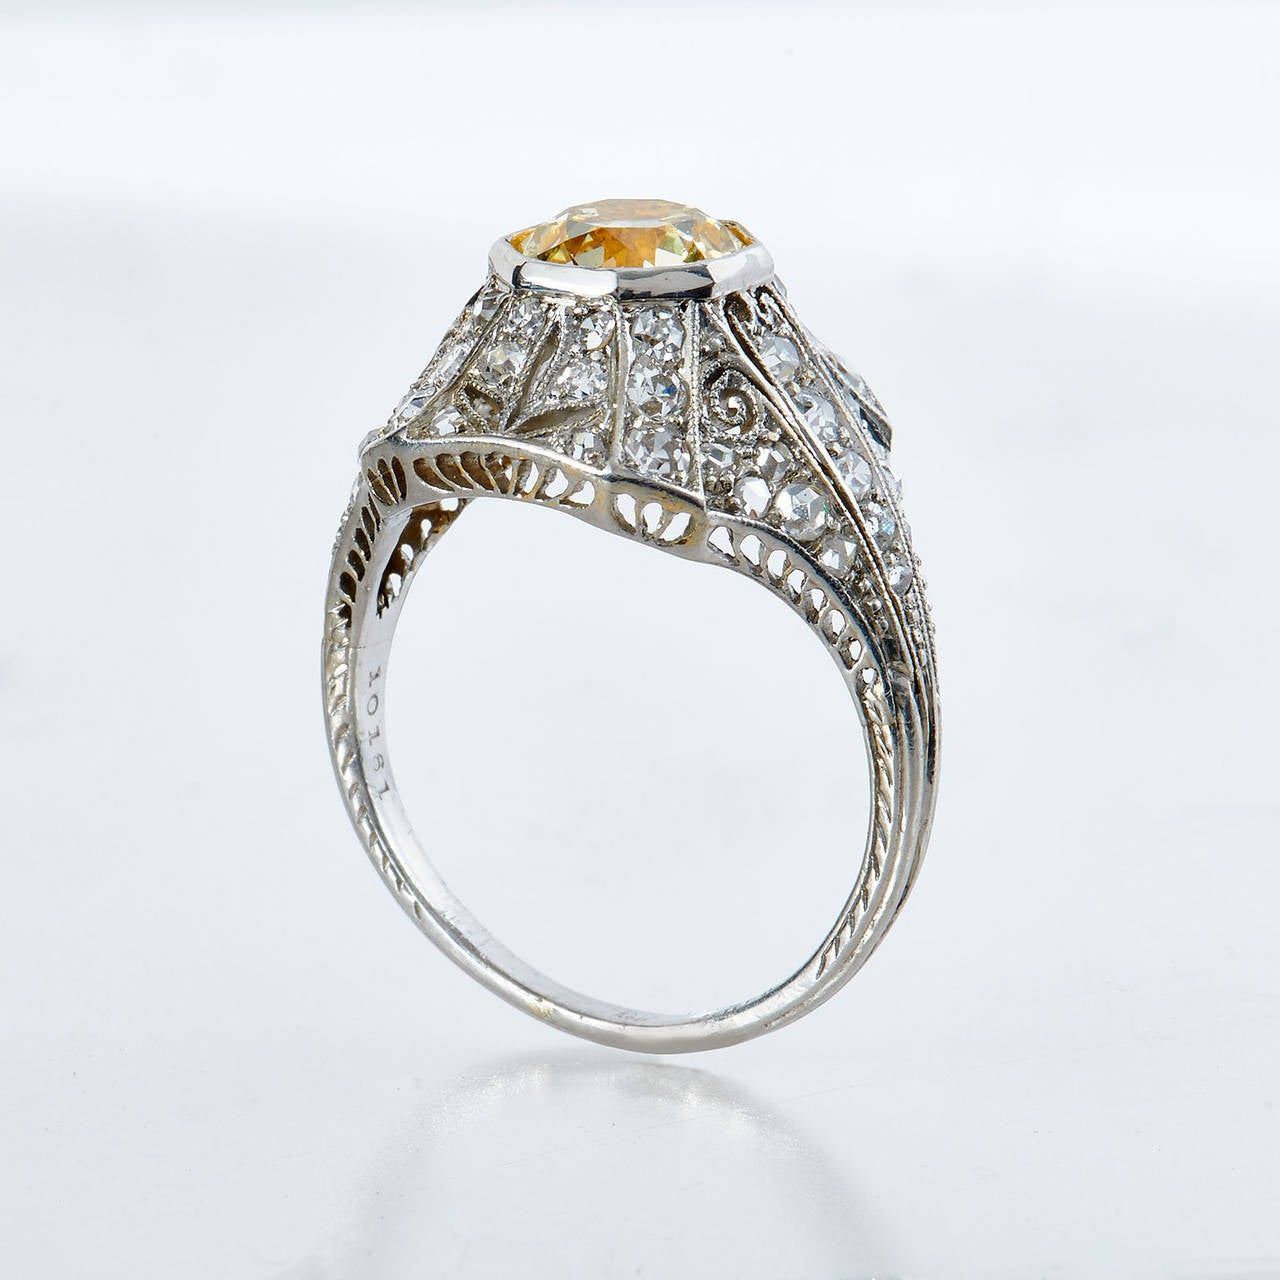 Art Deco 1.25 Carat Natural Fancy Yellow Old European Cut Diamond Platinum Ring For Sale